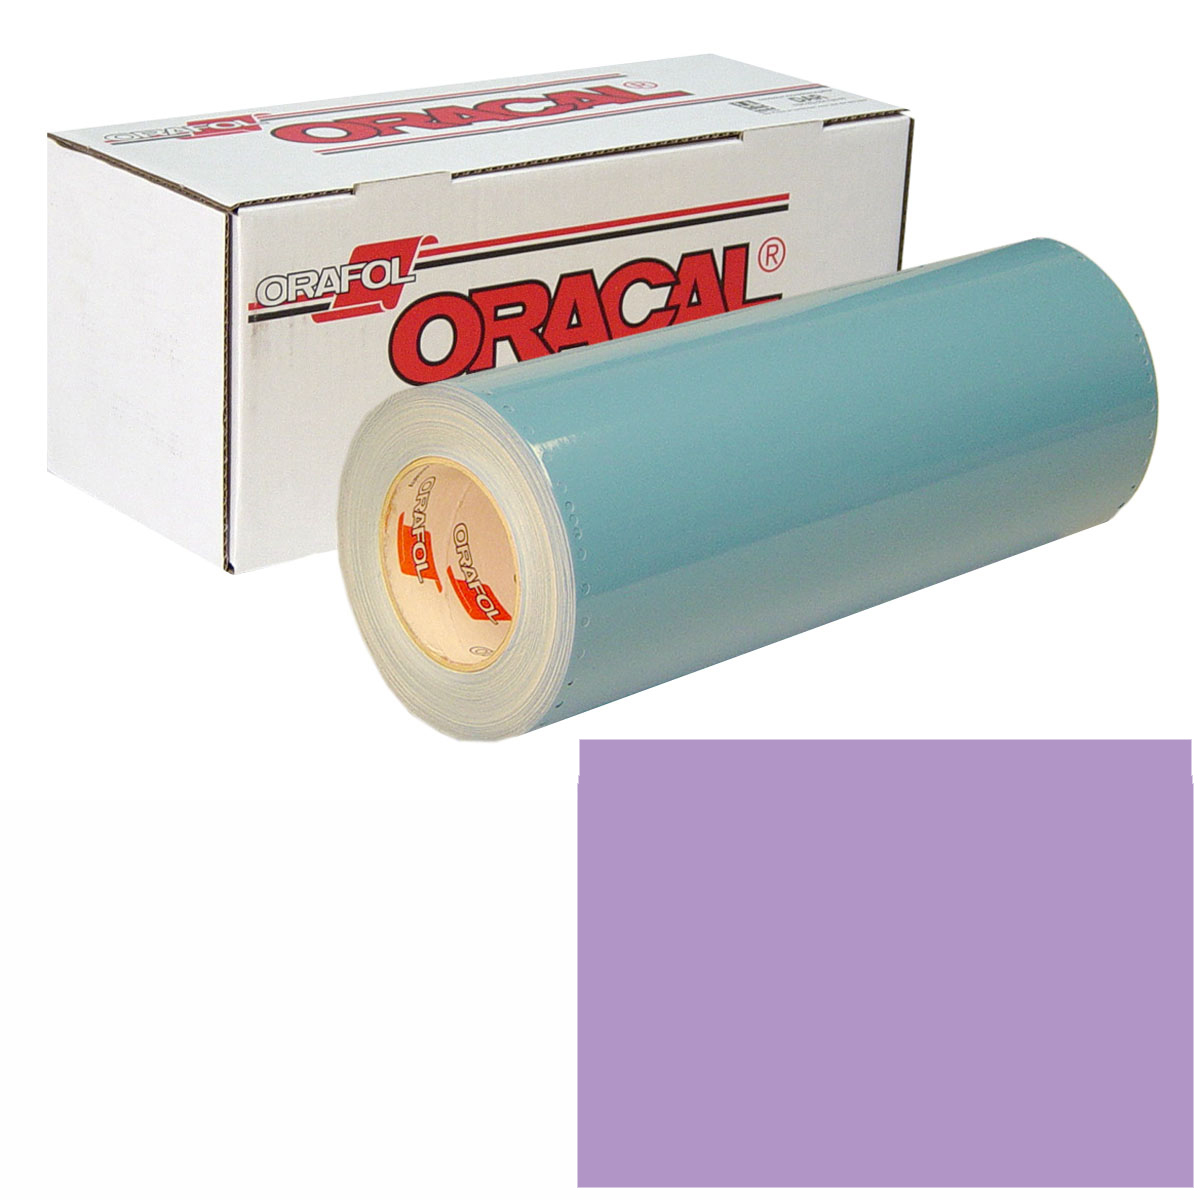 ORACAL 751 15In X 10Yd 042 Lilac